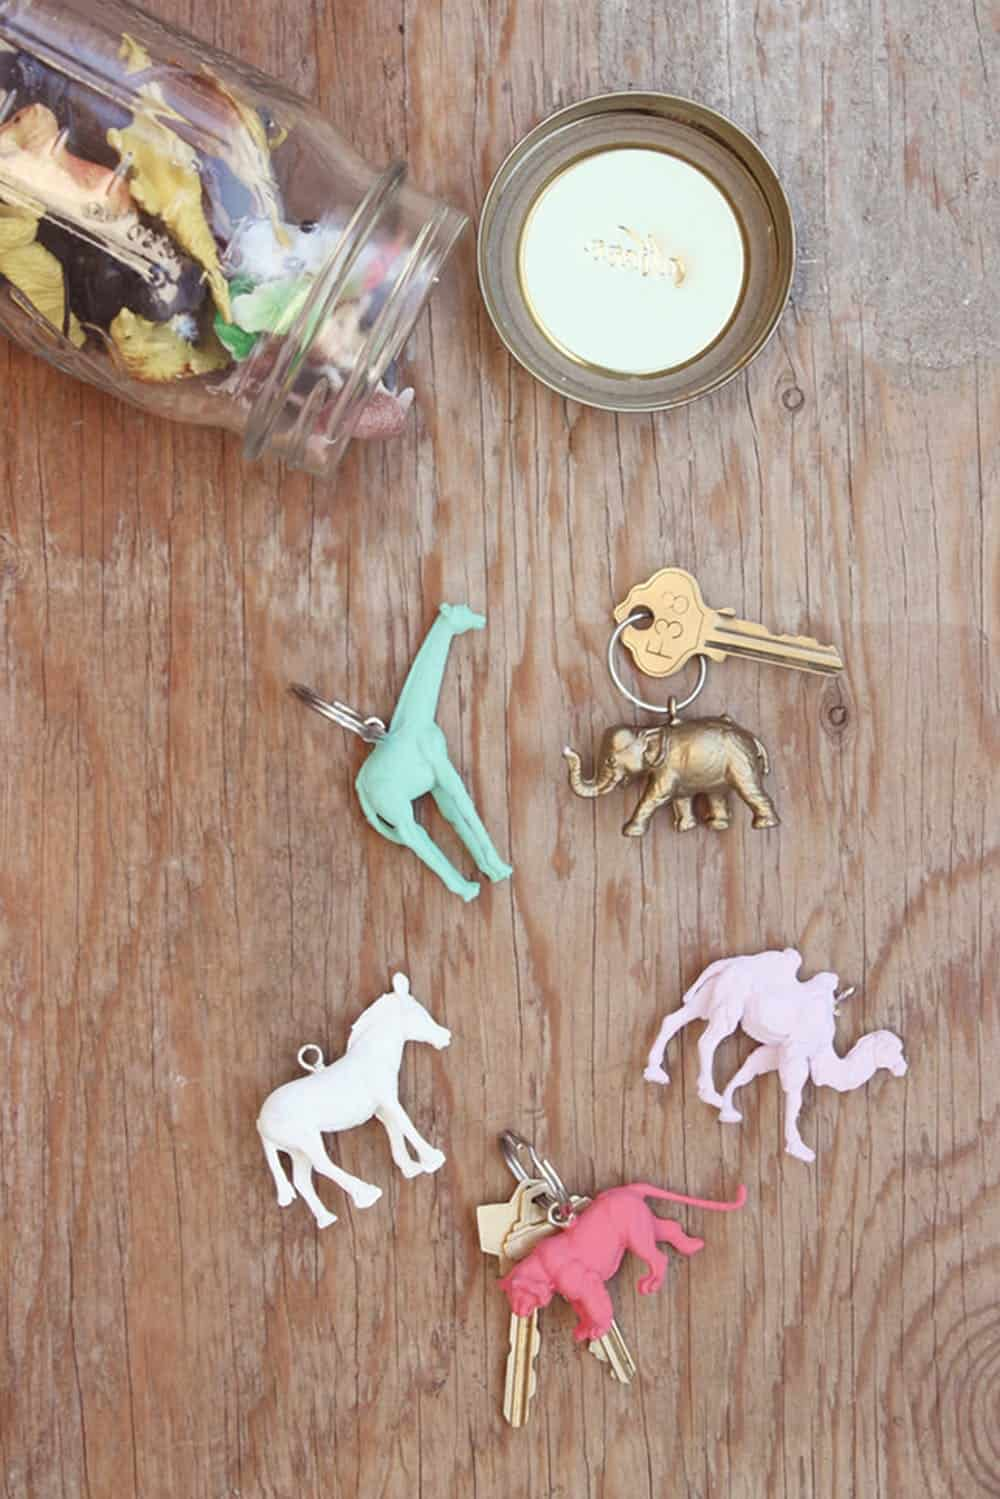 Animal key chains